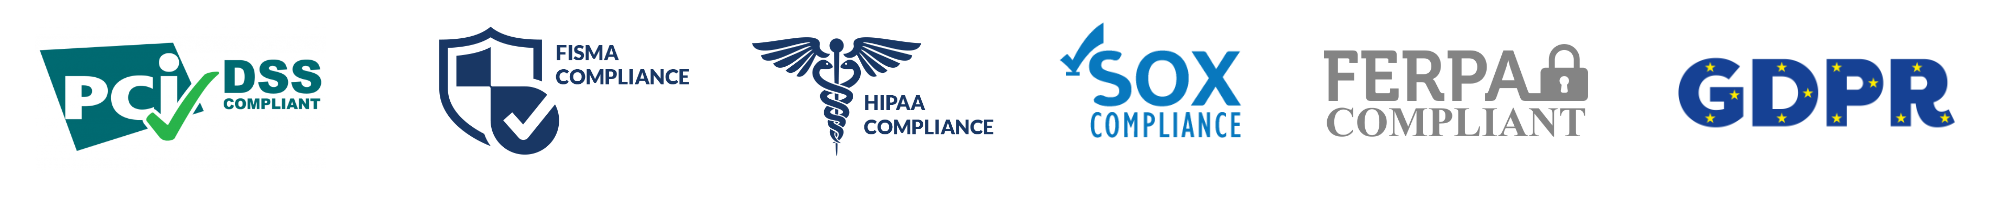 compliance-logos.png